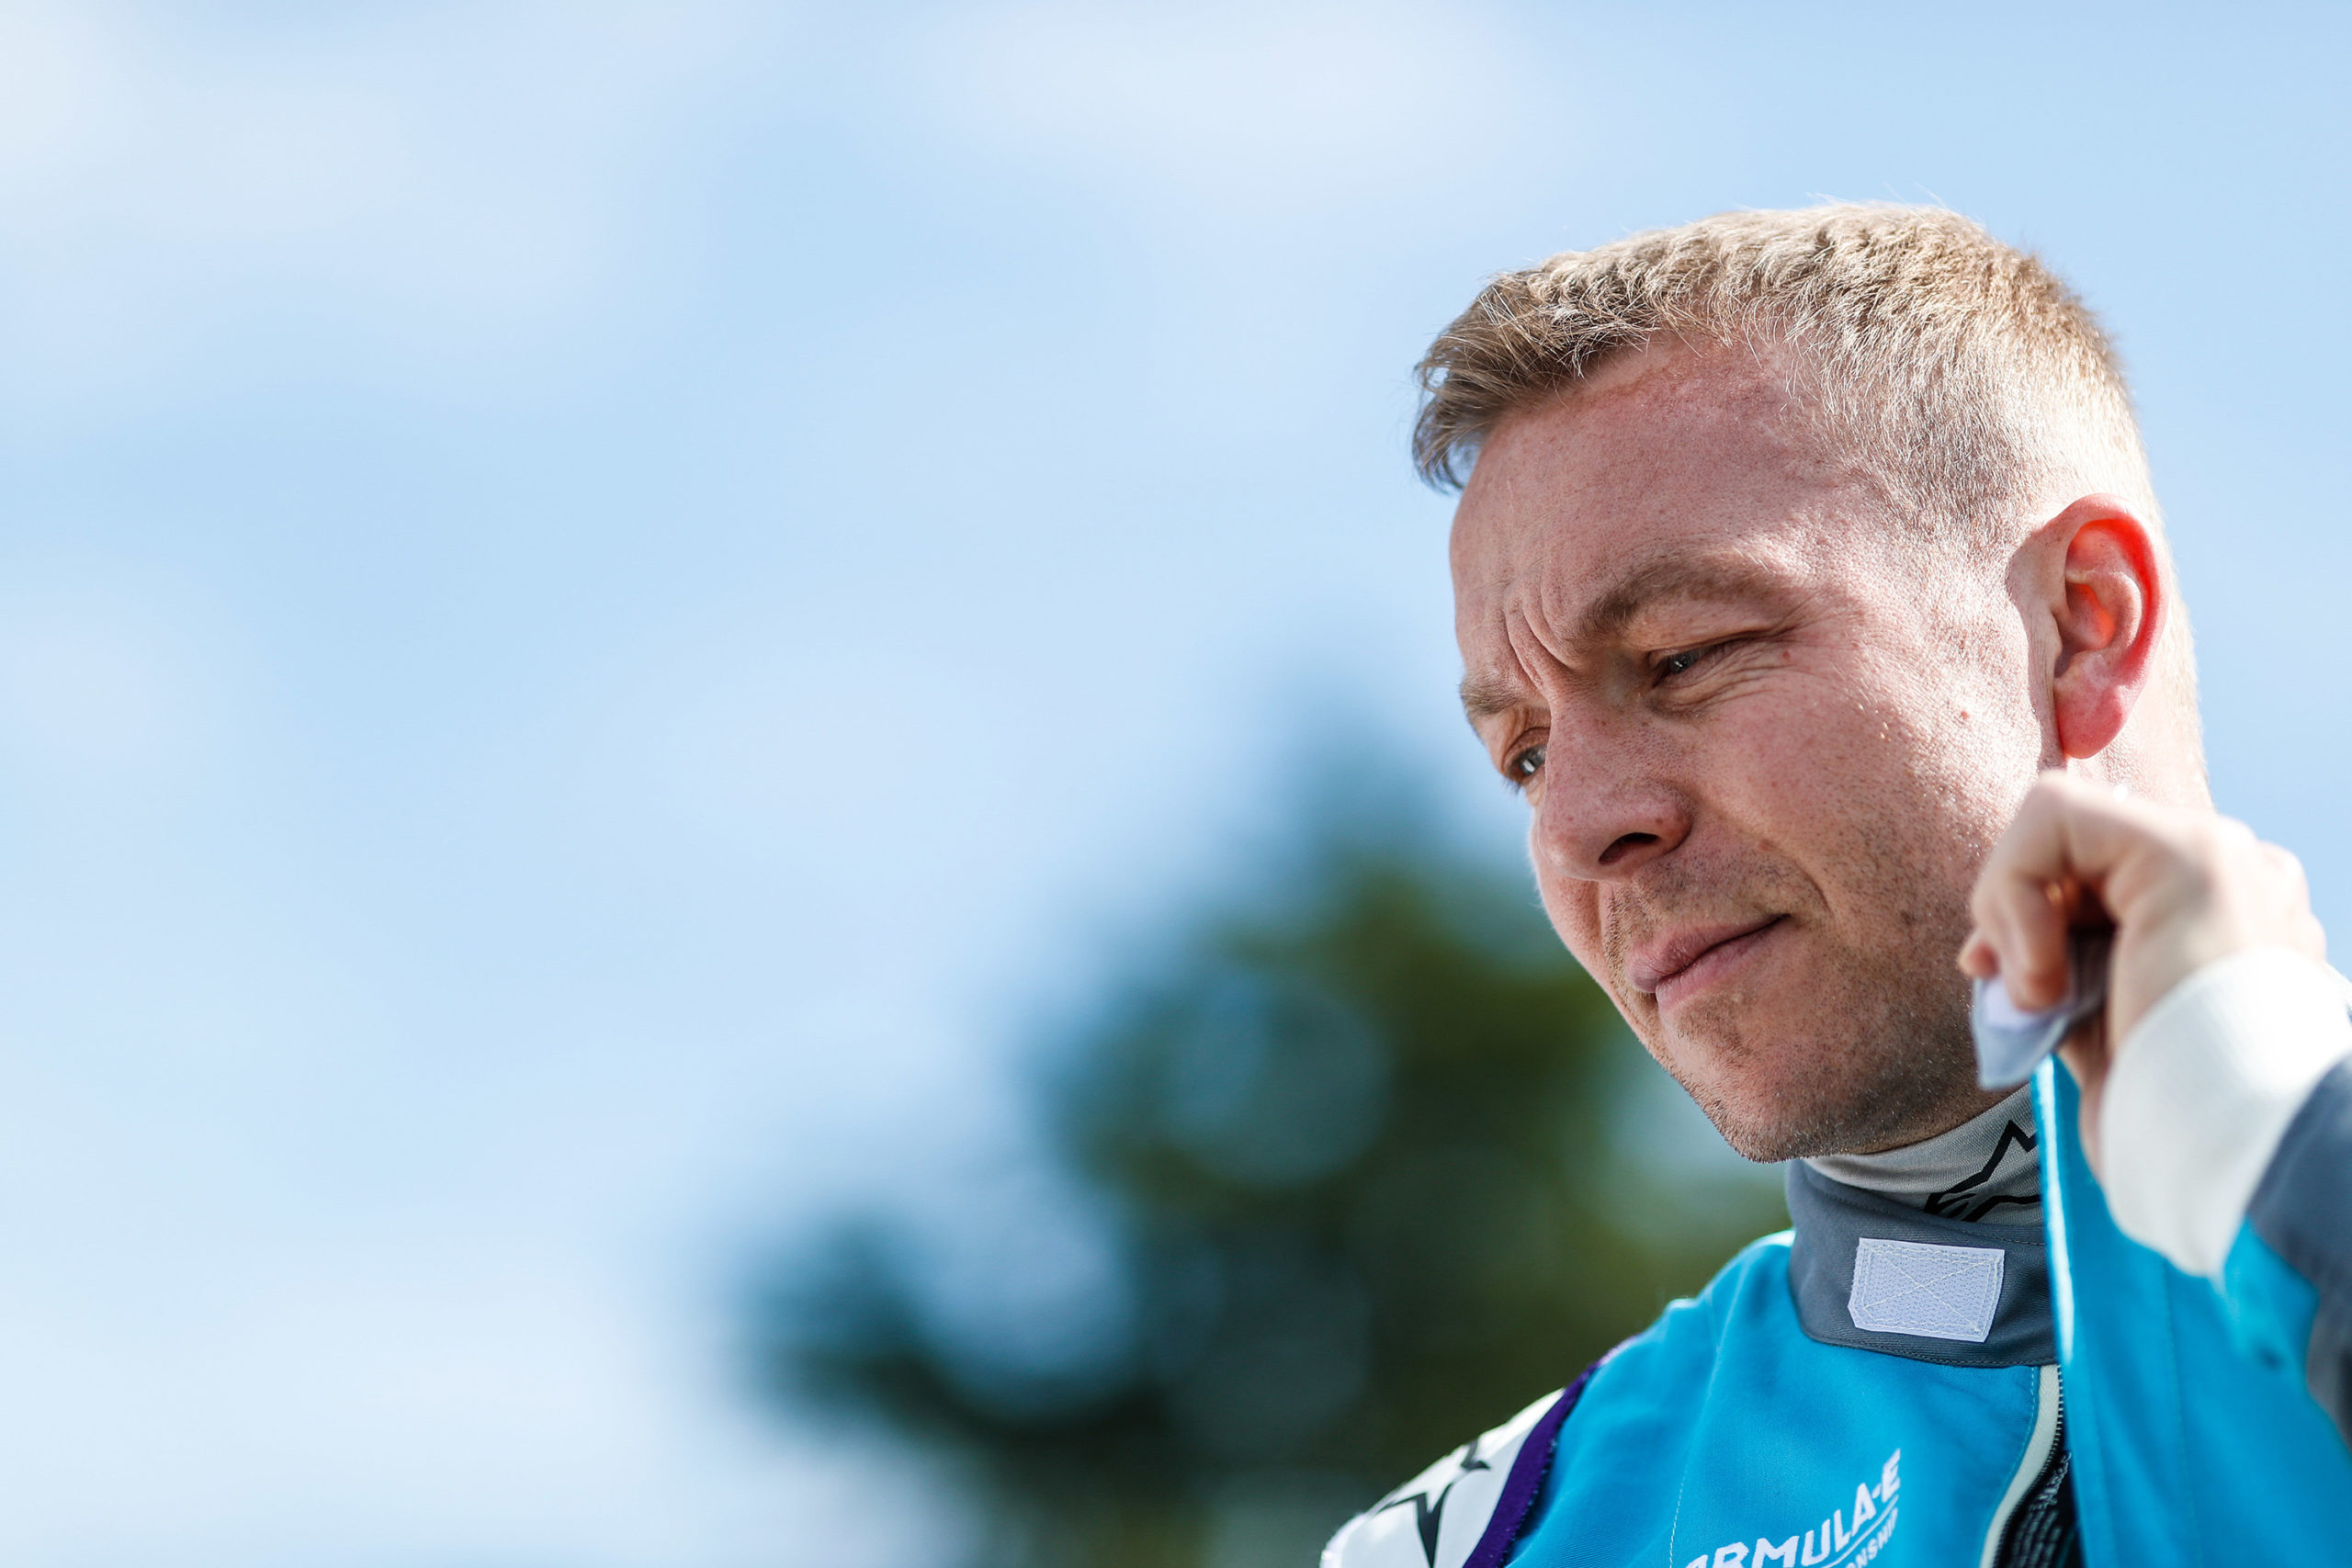 Chris-Hoy-Formula-E-suit-scaled.jpg